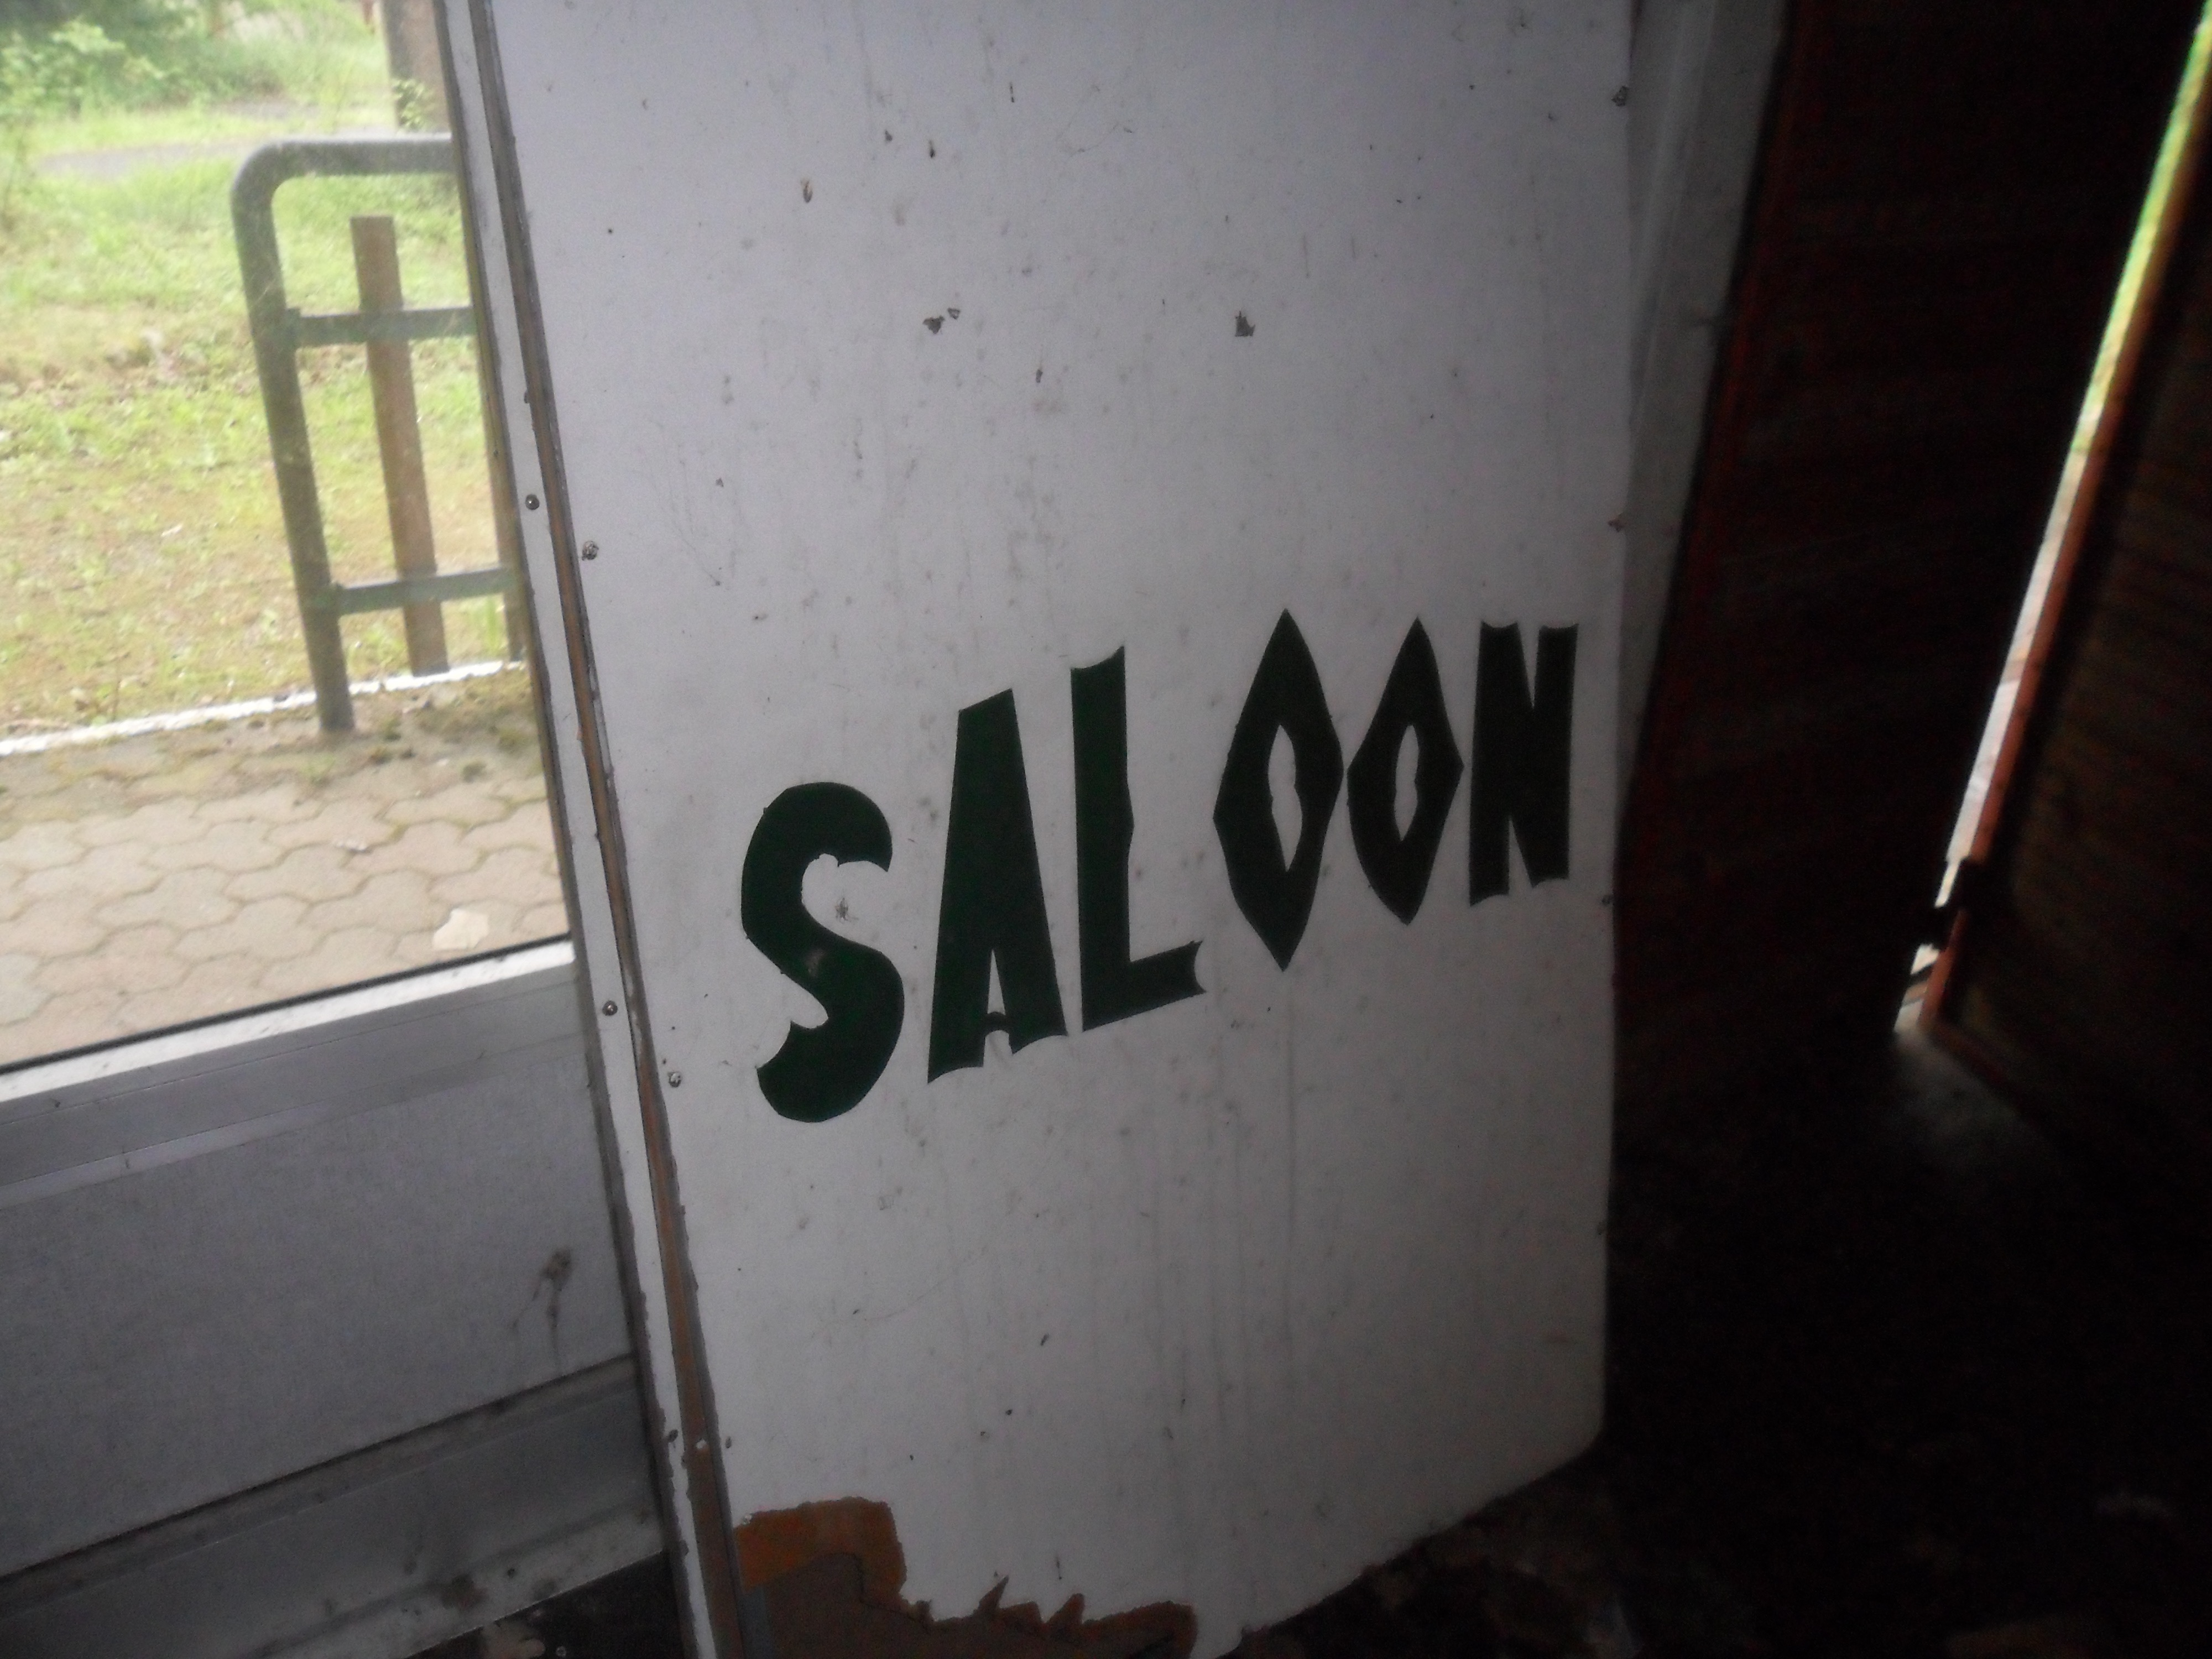 saloon cartello